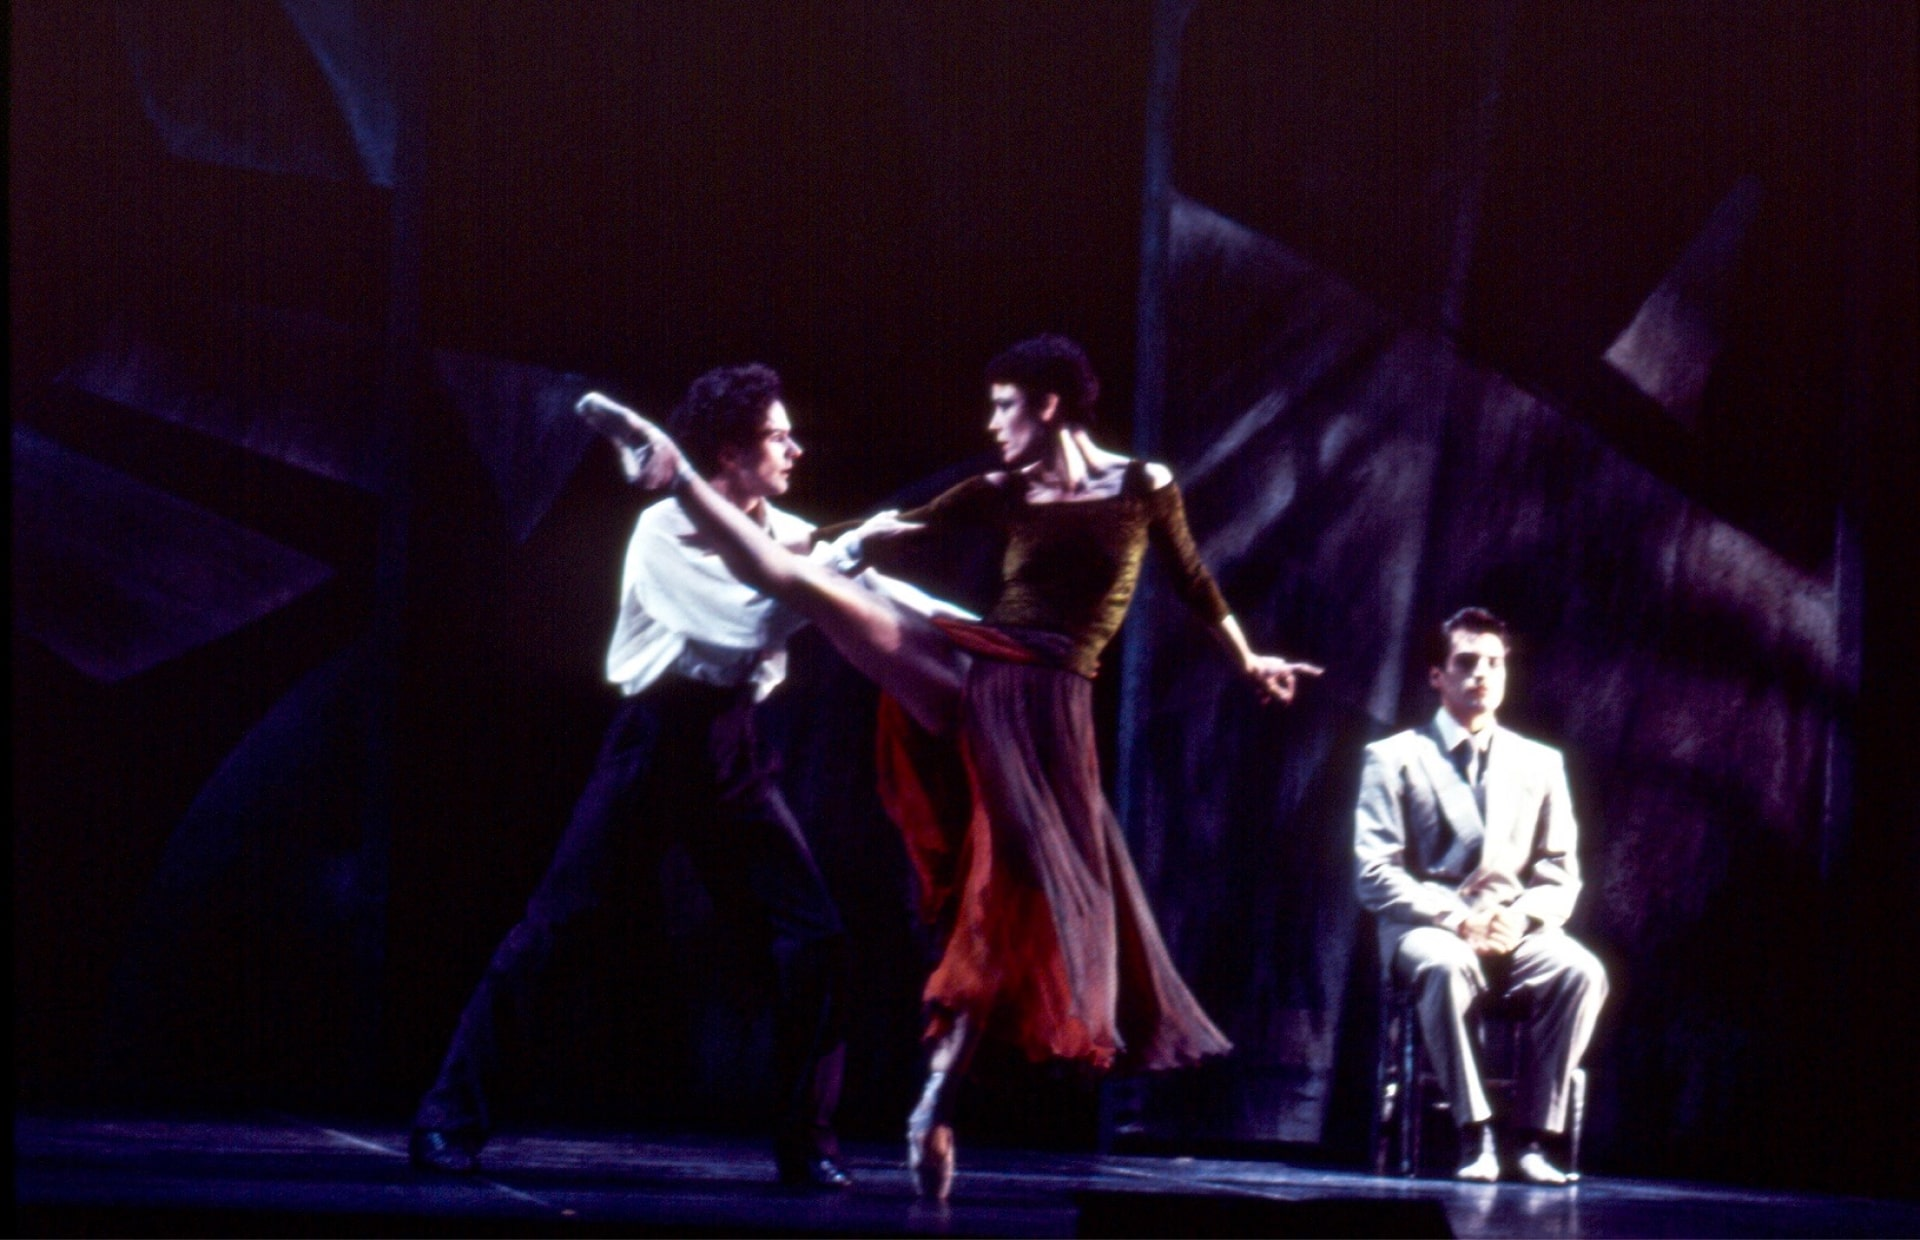 Dancer holds ballerina in red skirt with leg extended, watched by seated man in white suit against dark geometric background.